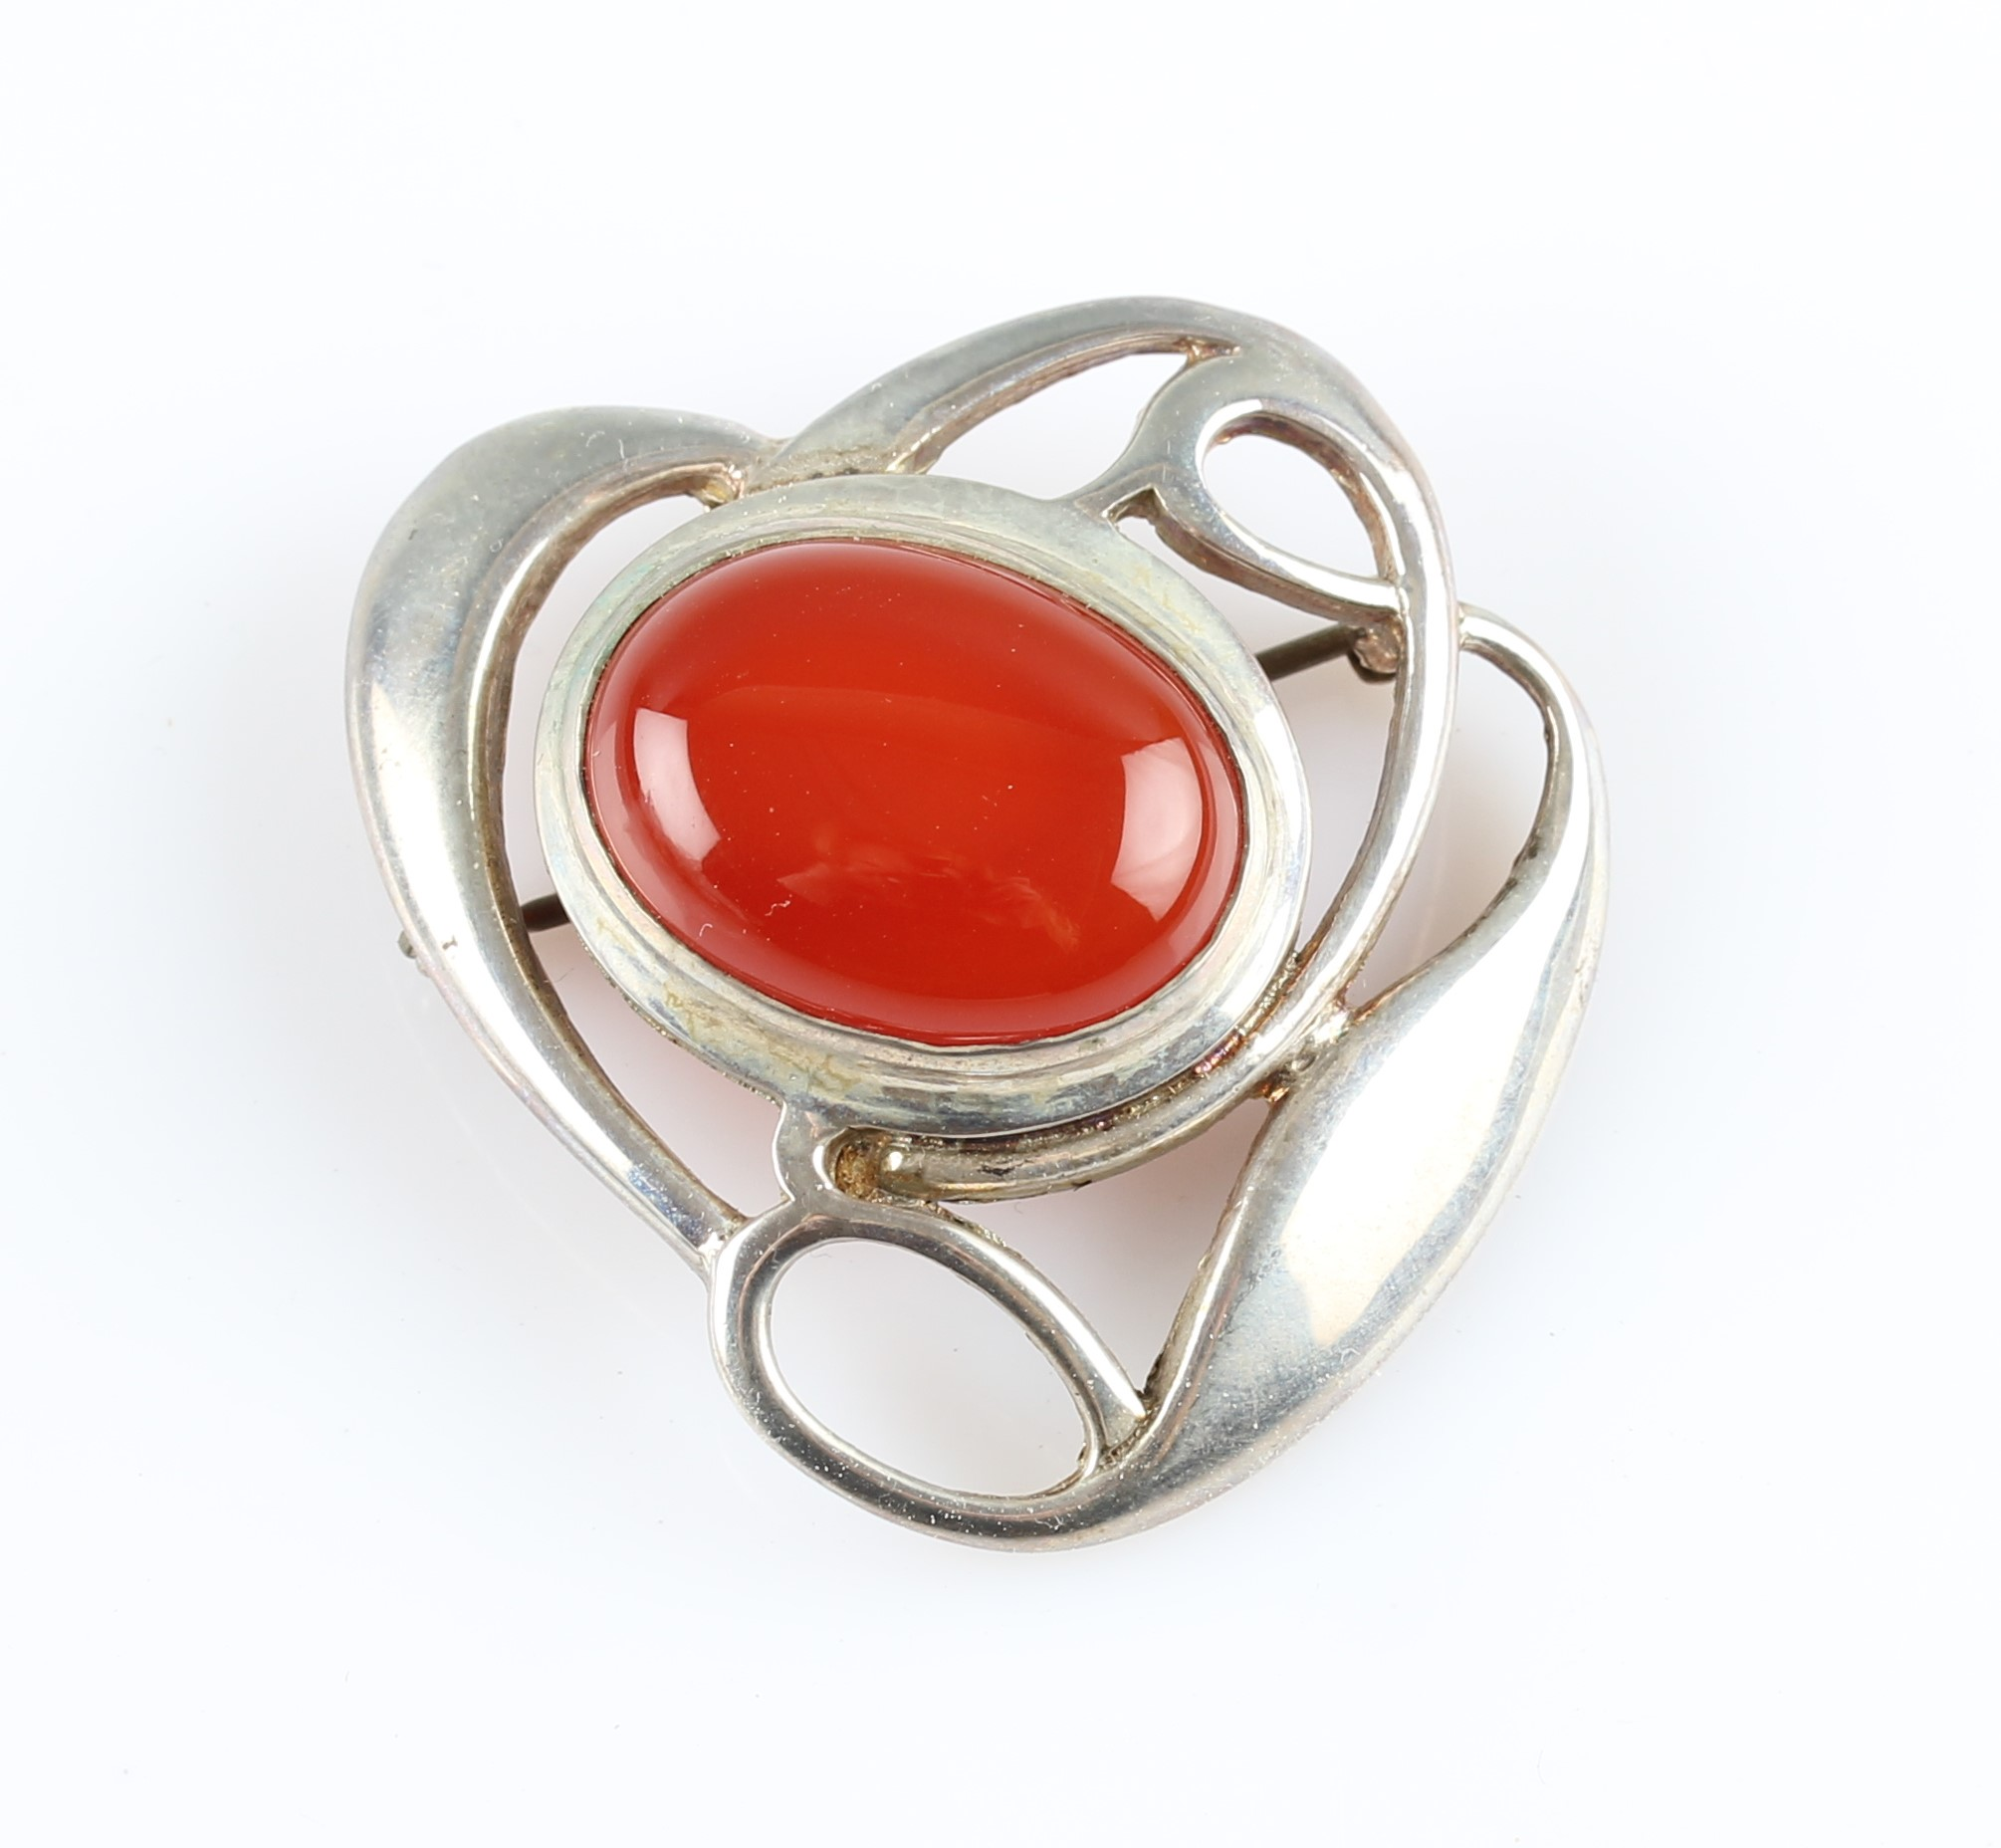 Lot 8 - A Liberty & Co. silver carnelian brooch, the open metalwork Arts & Crafts design set centrally